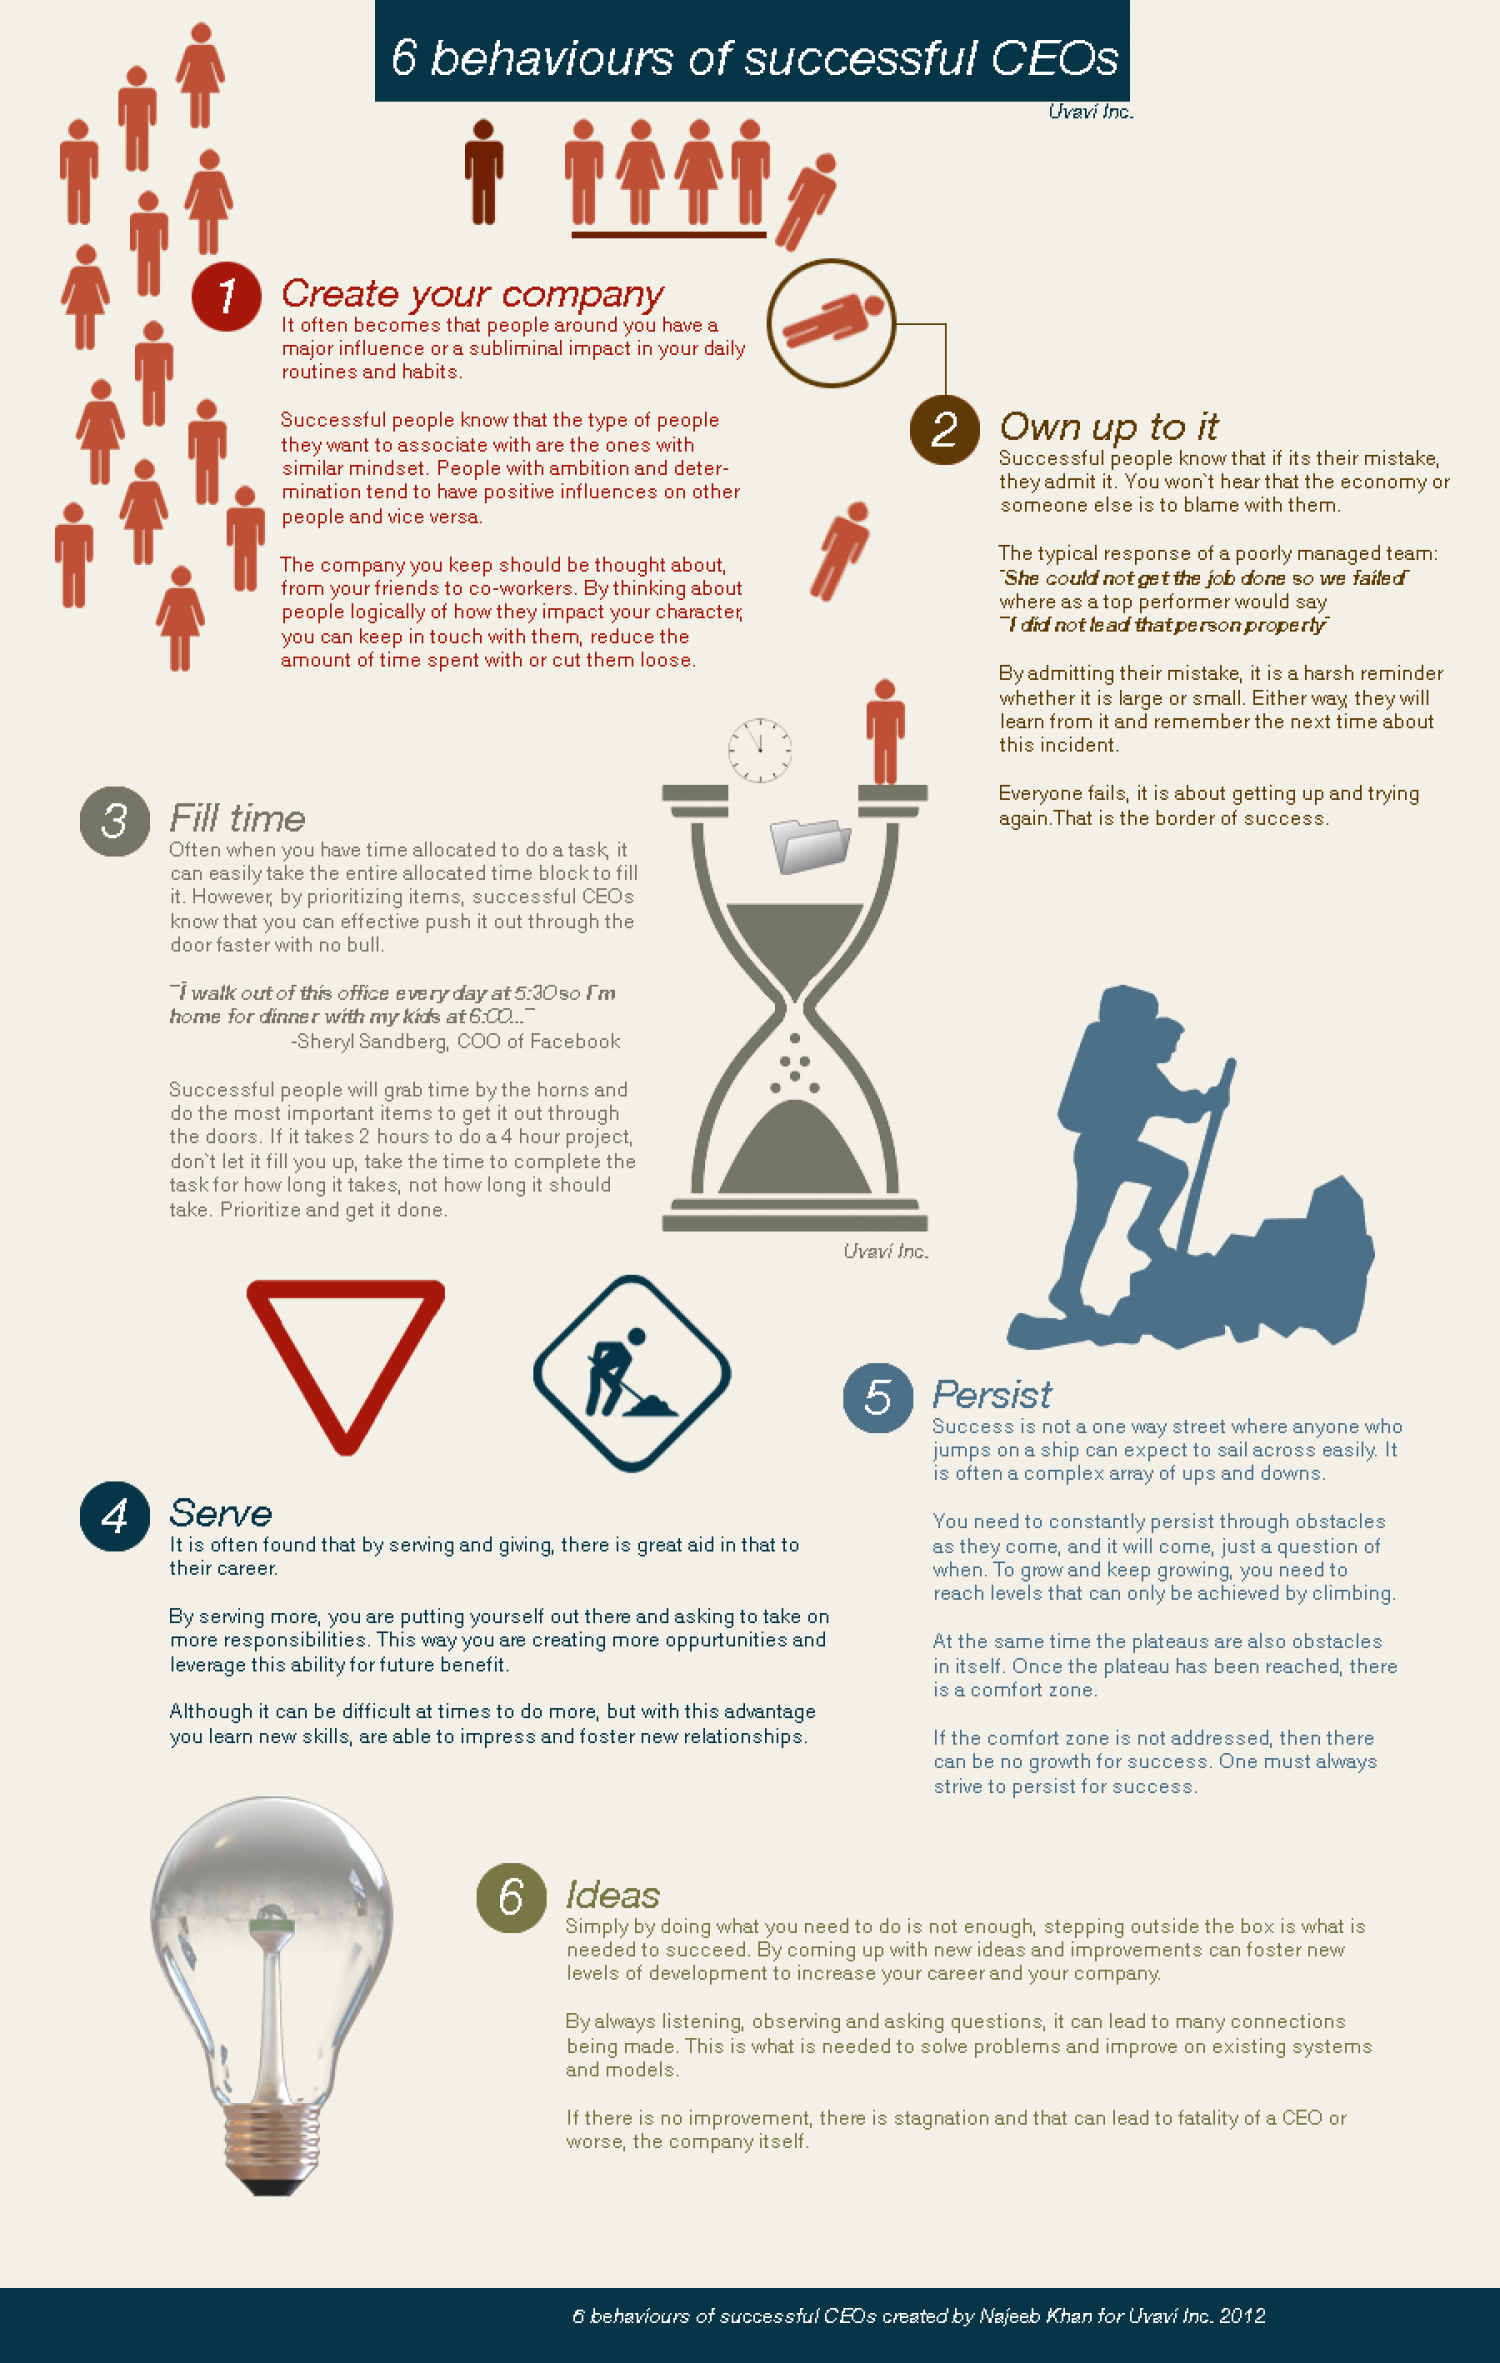 6 behaviors of successful CEOs Infographic